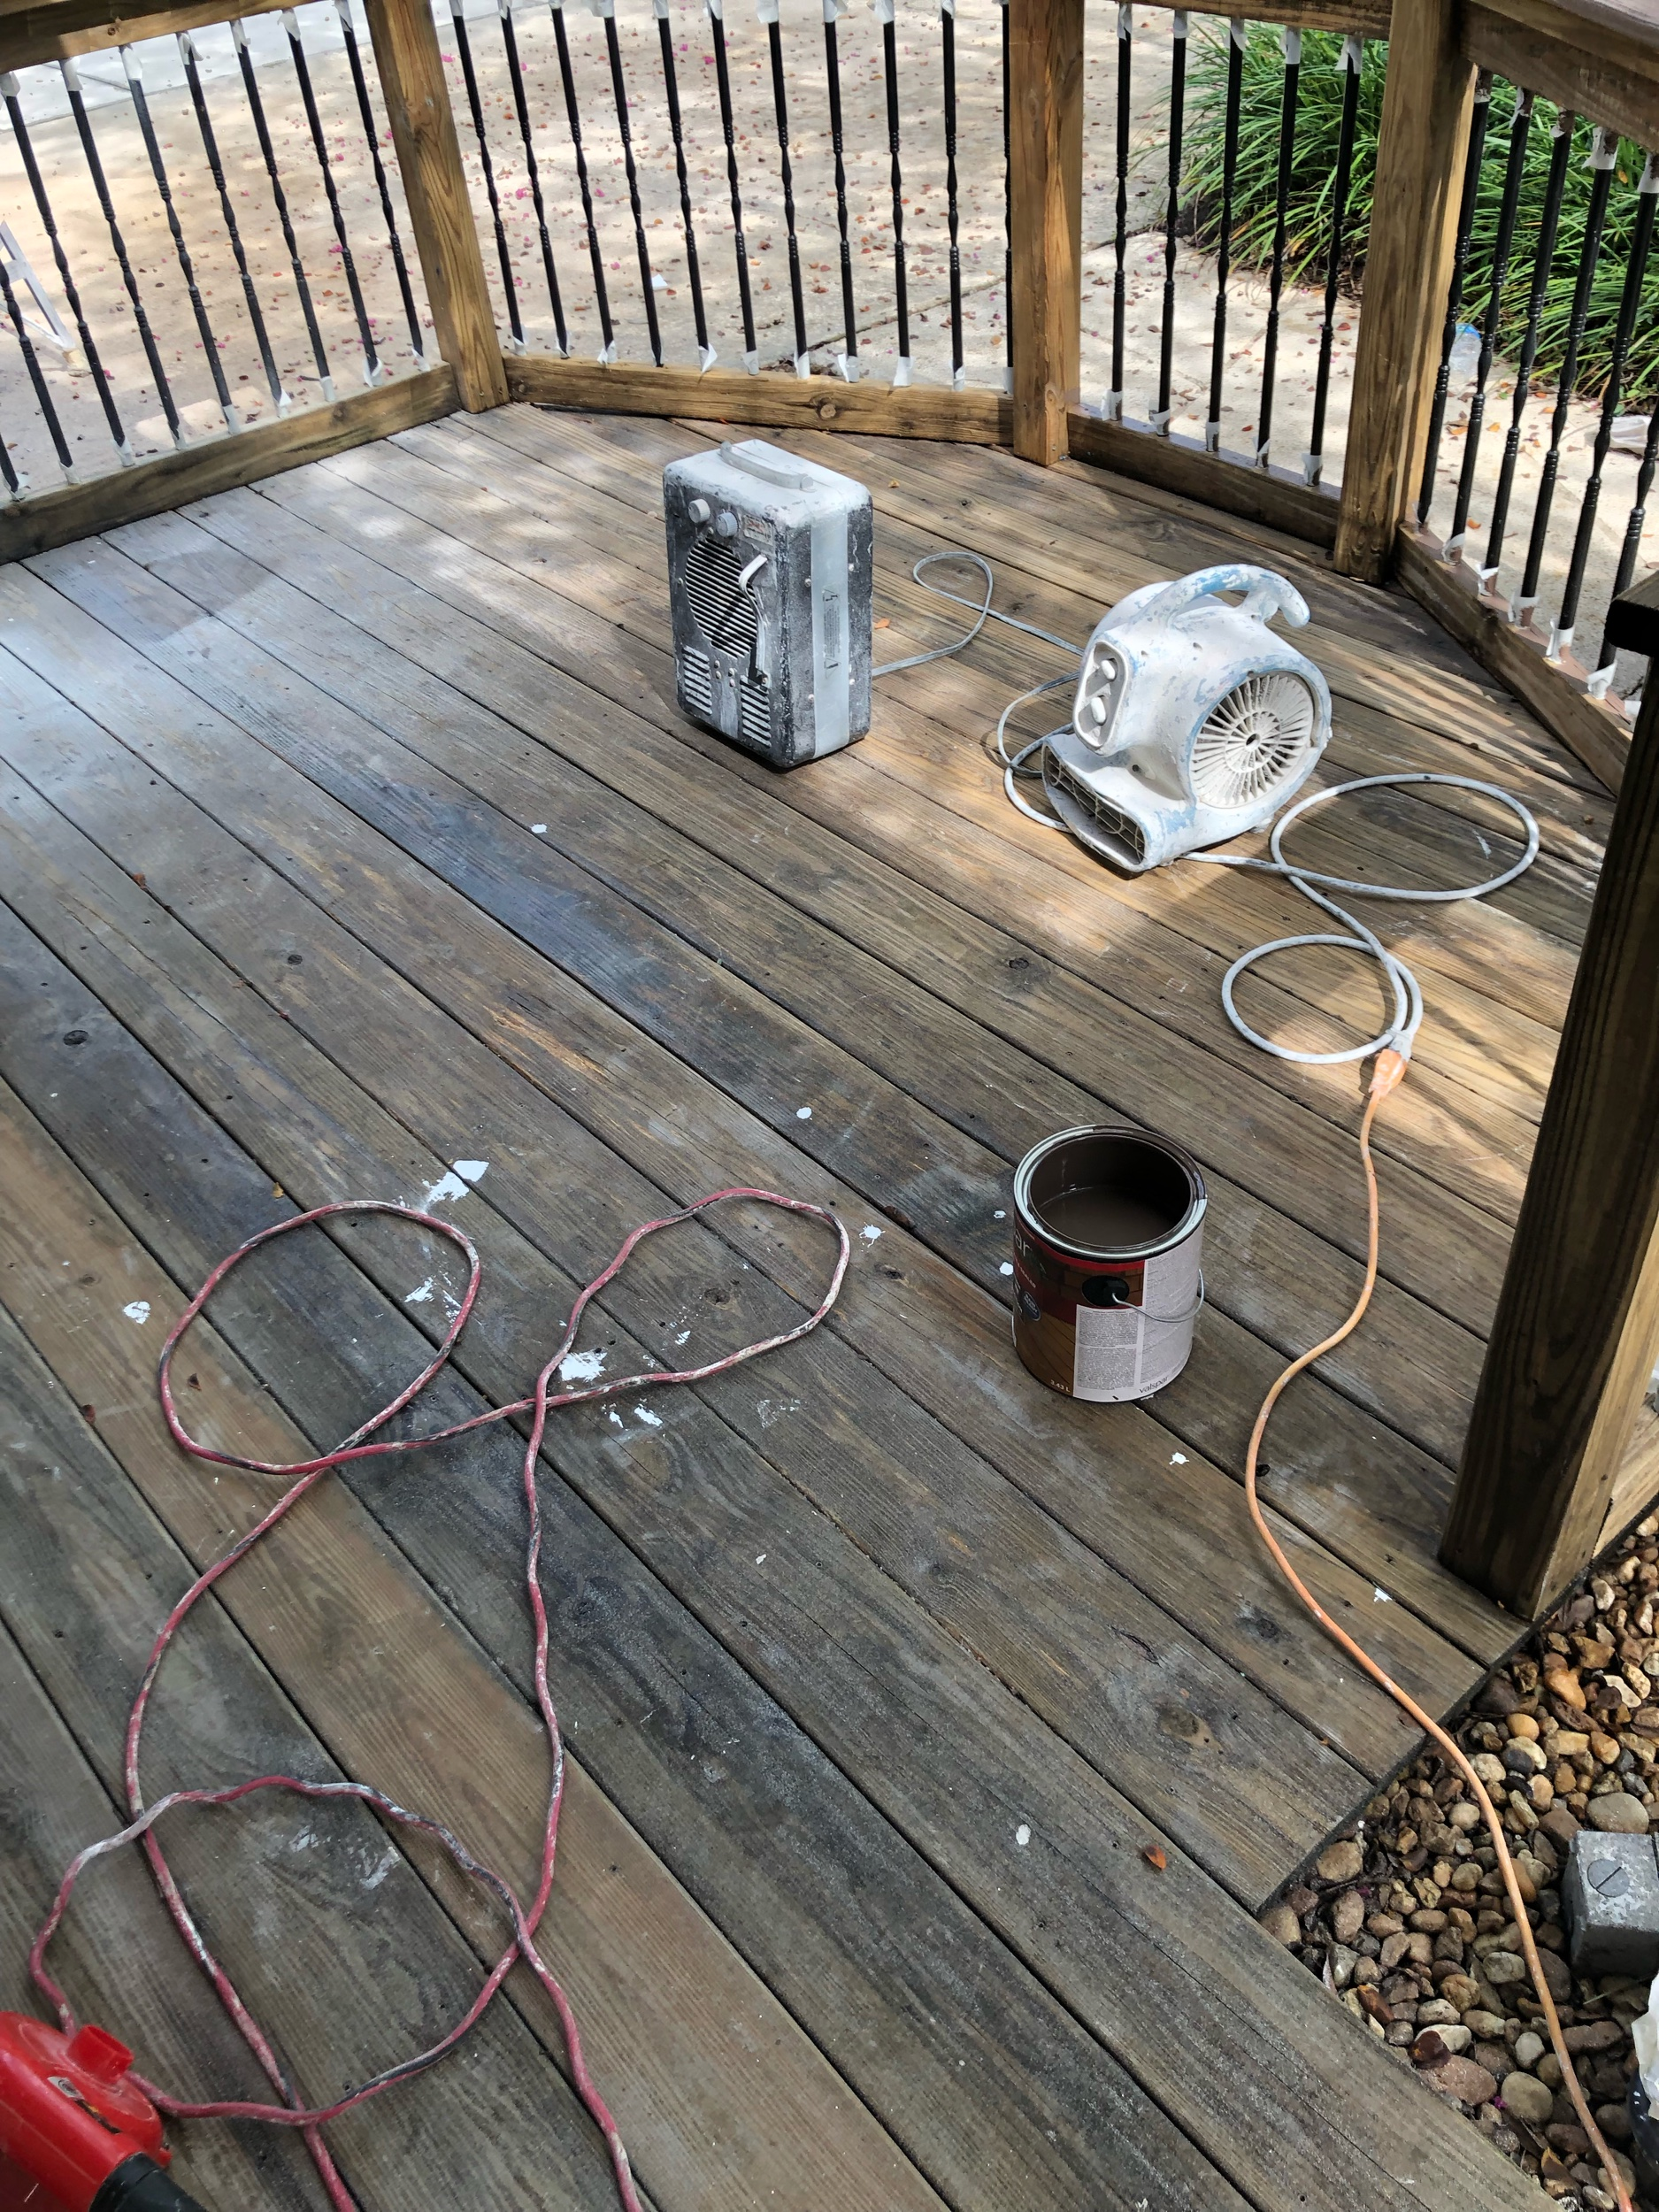 Prepping to solid stain a wooden deck.